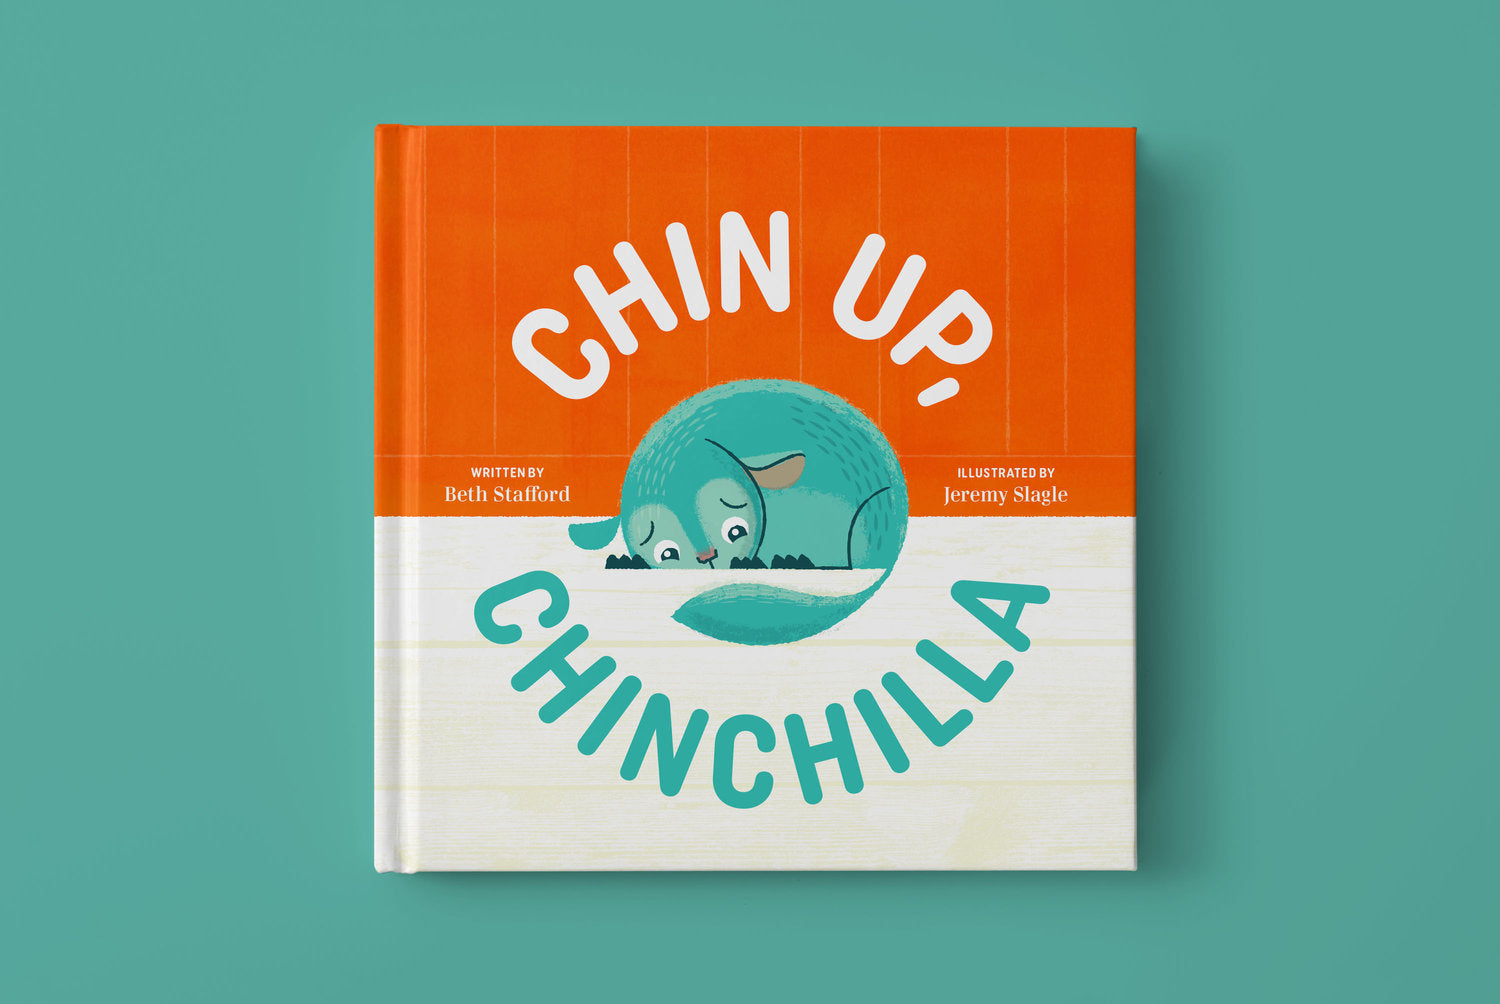 Chin Up, Chinchilla book. Illustrated by Jeremy Slagle.